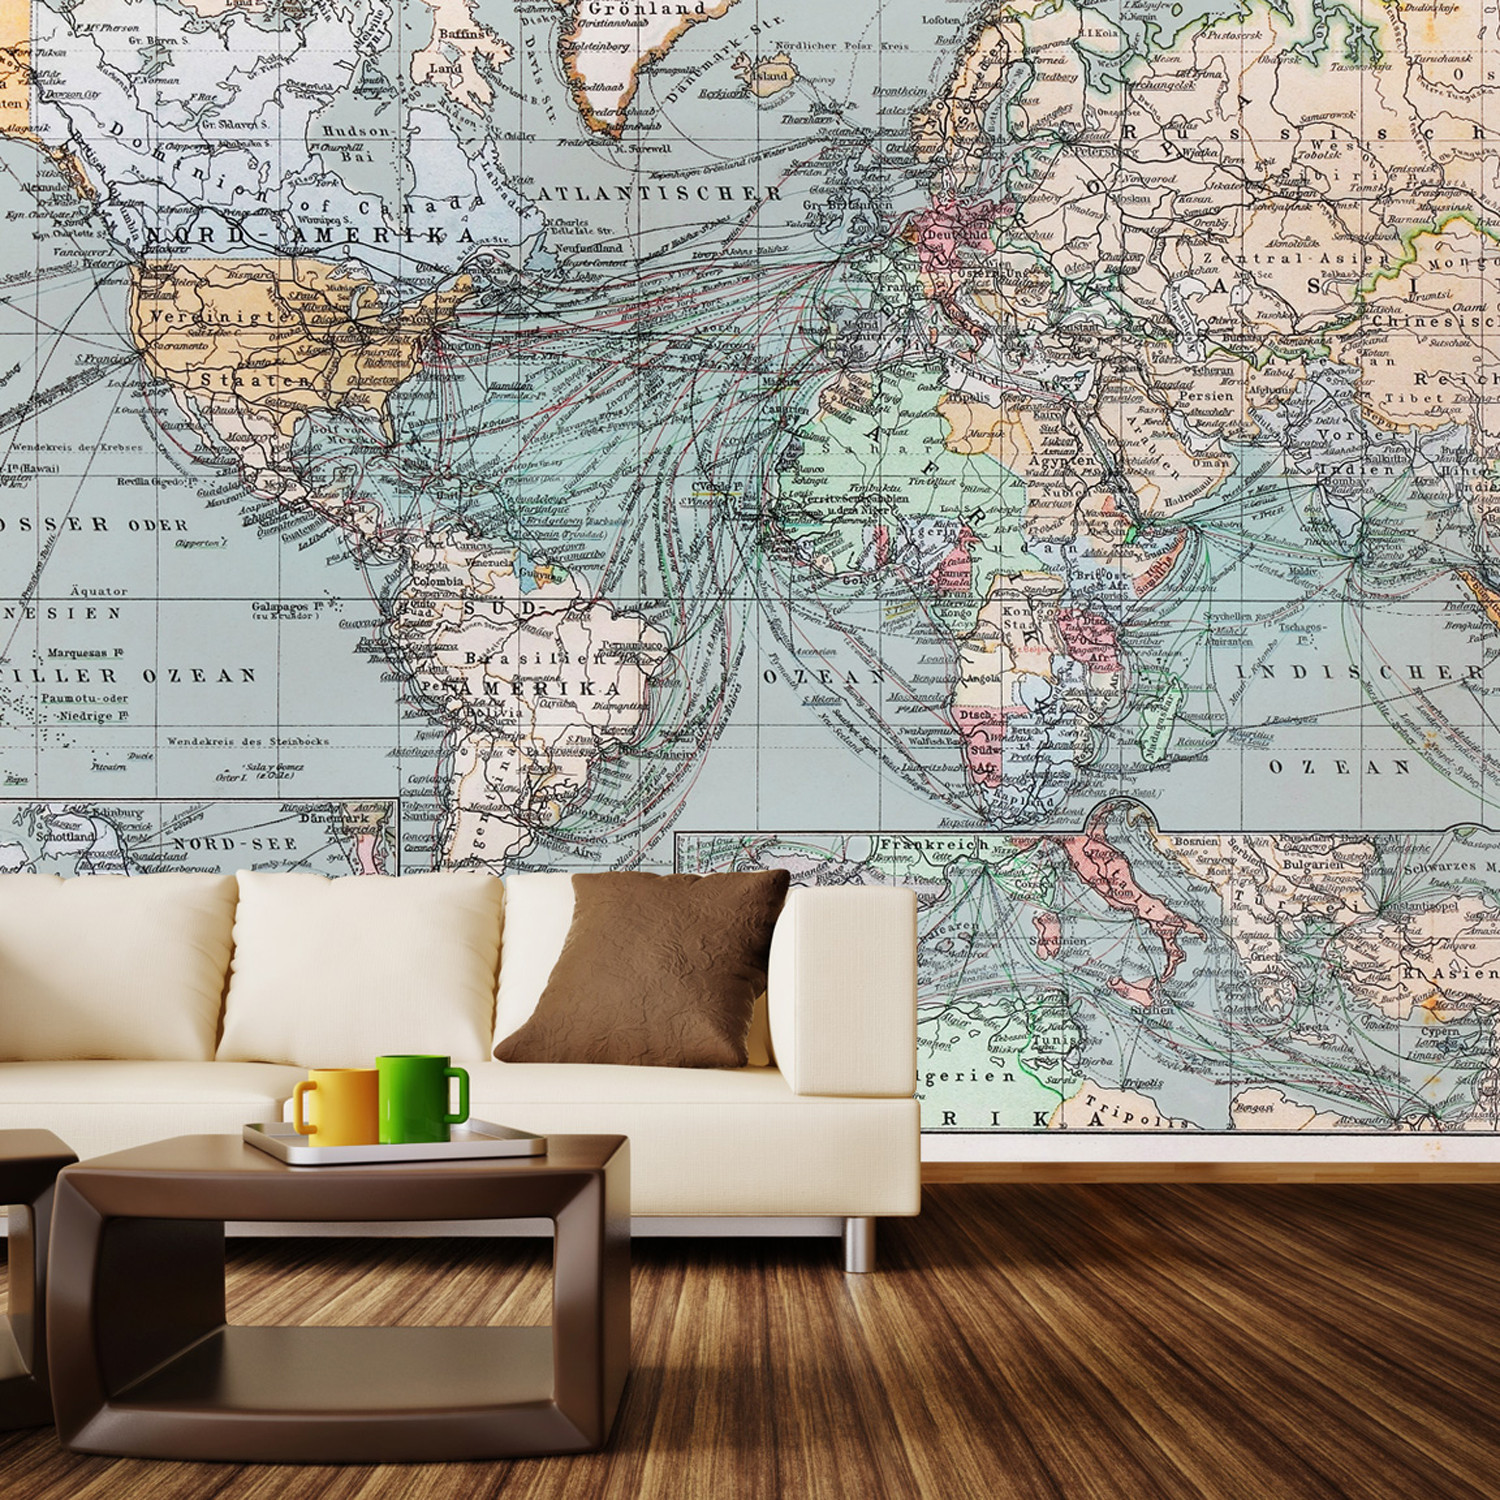 "Vintage World Map Wall Mural Decal 100""L x 100""W Walls"